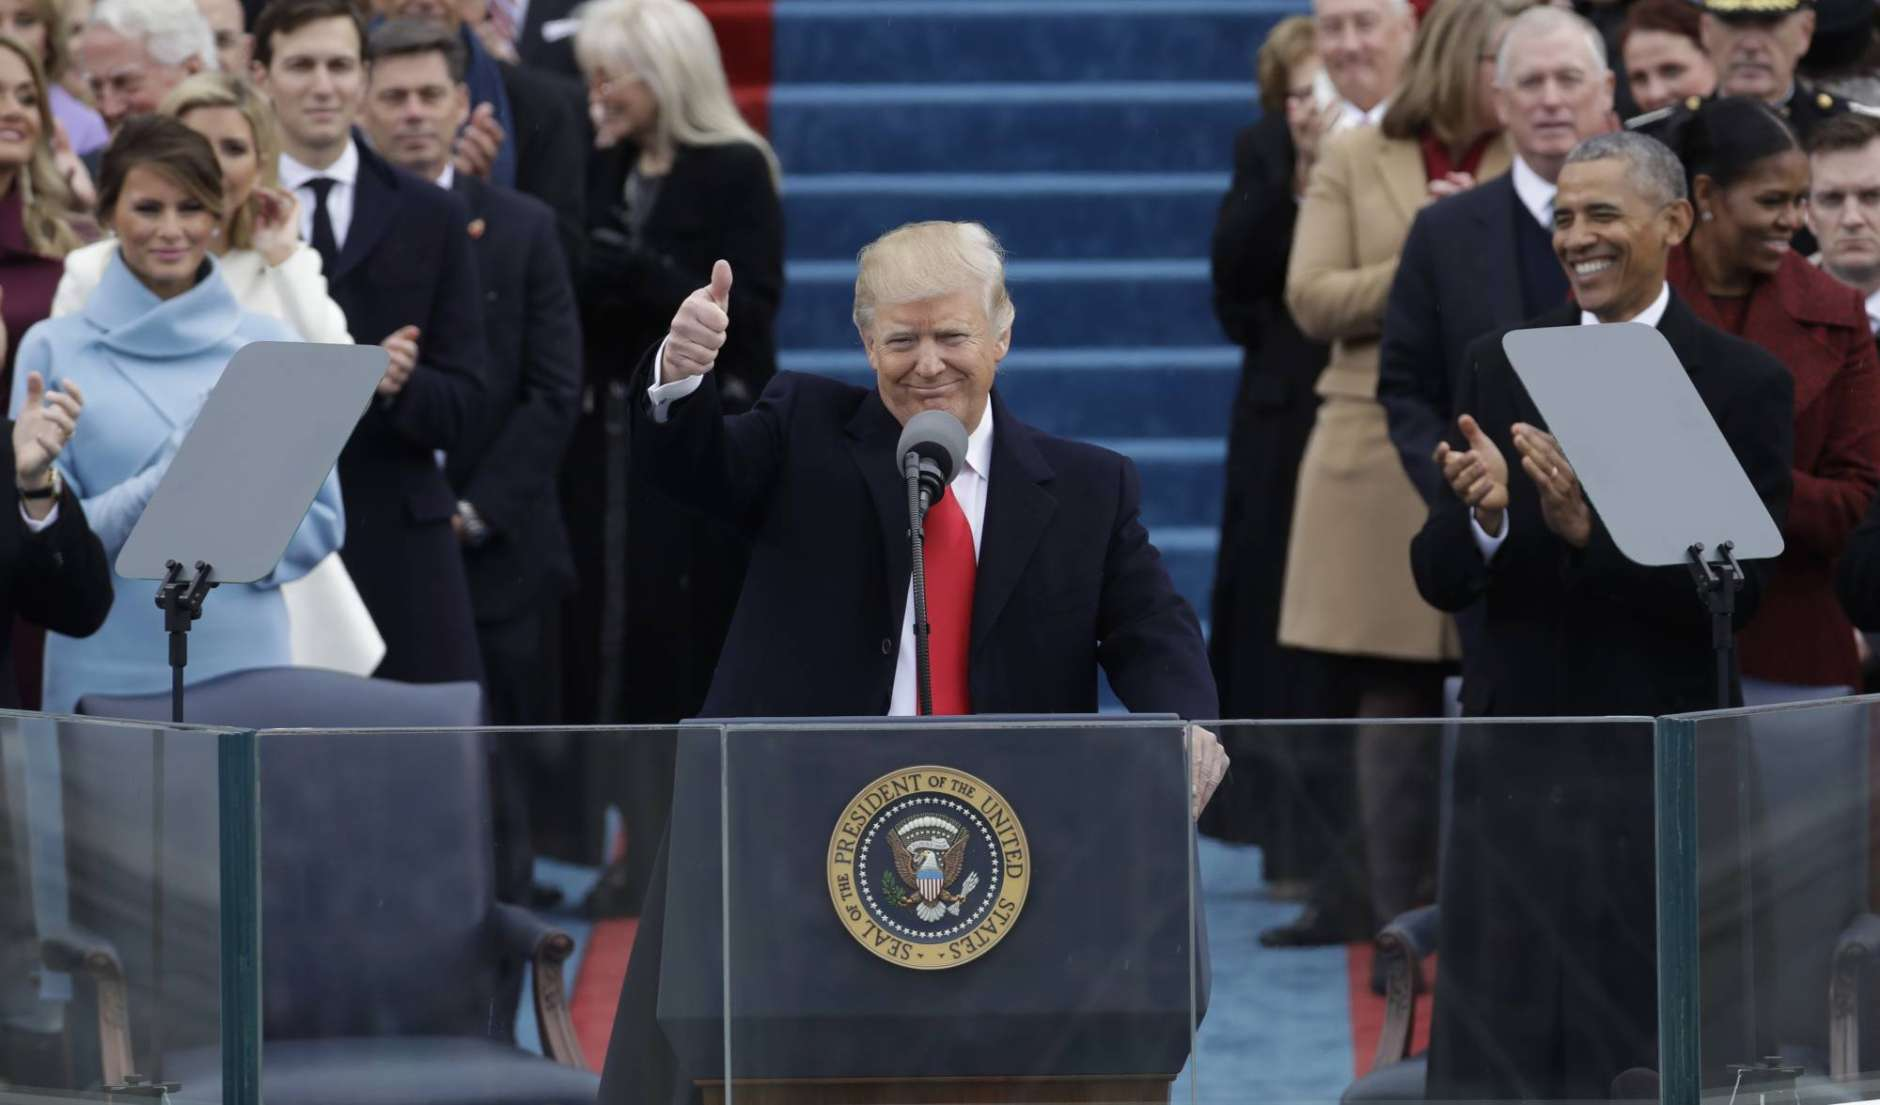 FILE - In this Jan. 20, 2017 file photo, President Donald Trump gives a thumbs after being sworn in as the 45th president of the U.S. during the 58th Presidential Inauguration on Capitol Hill in Washington. Trump has demonstrated more than once that he can project a more disciplined and presidential style when he wants, only to quickly slip back to his old ways. (AP Photo/Patrick Semansky, File)